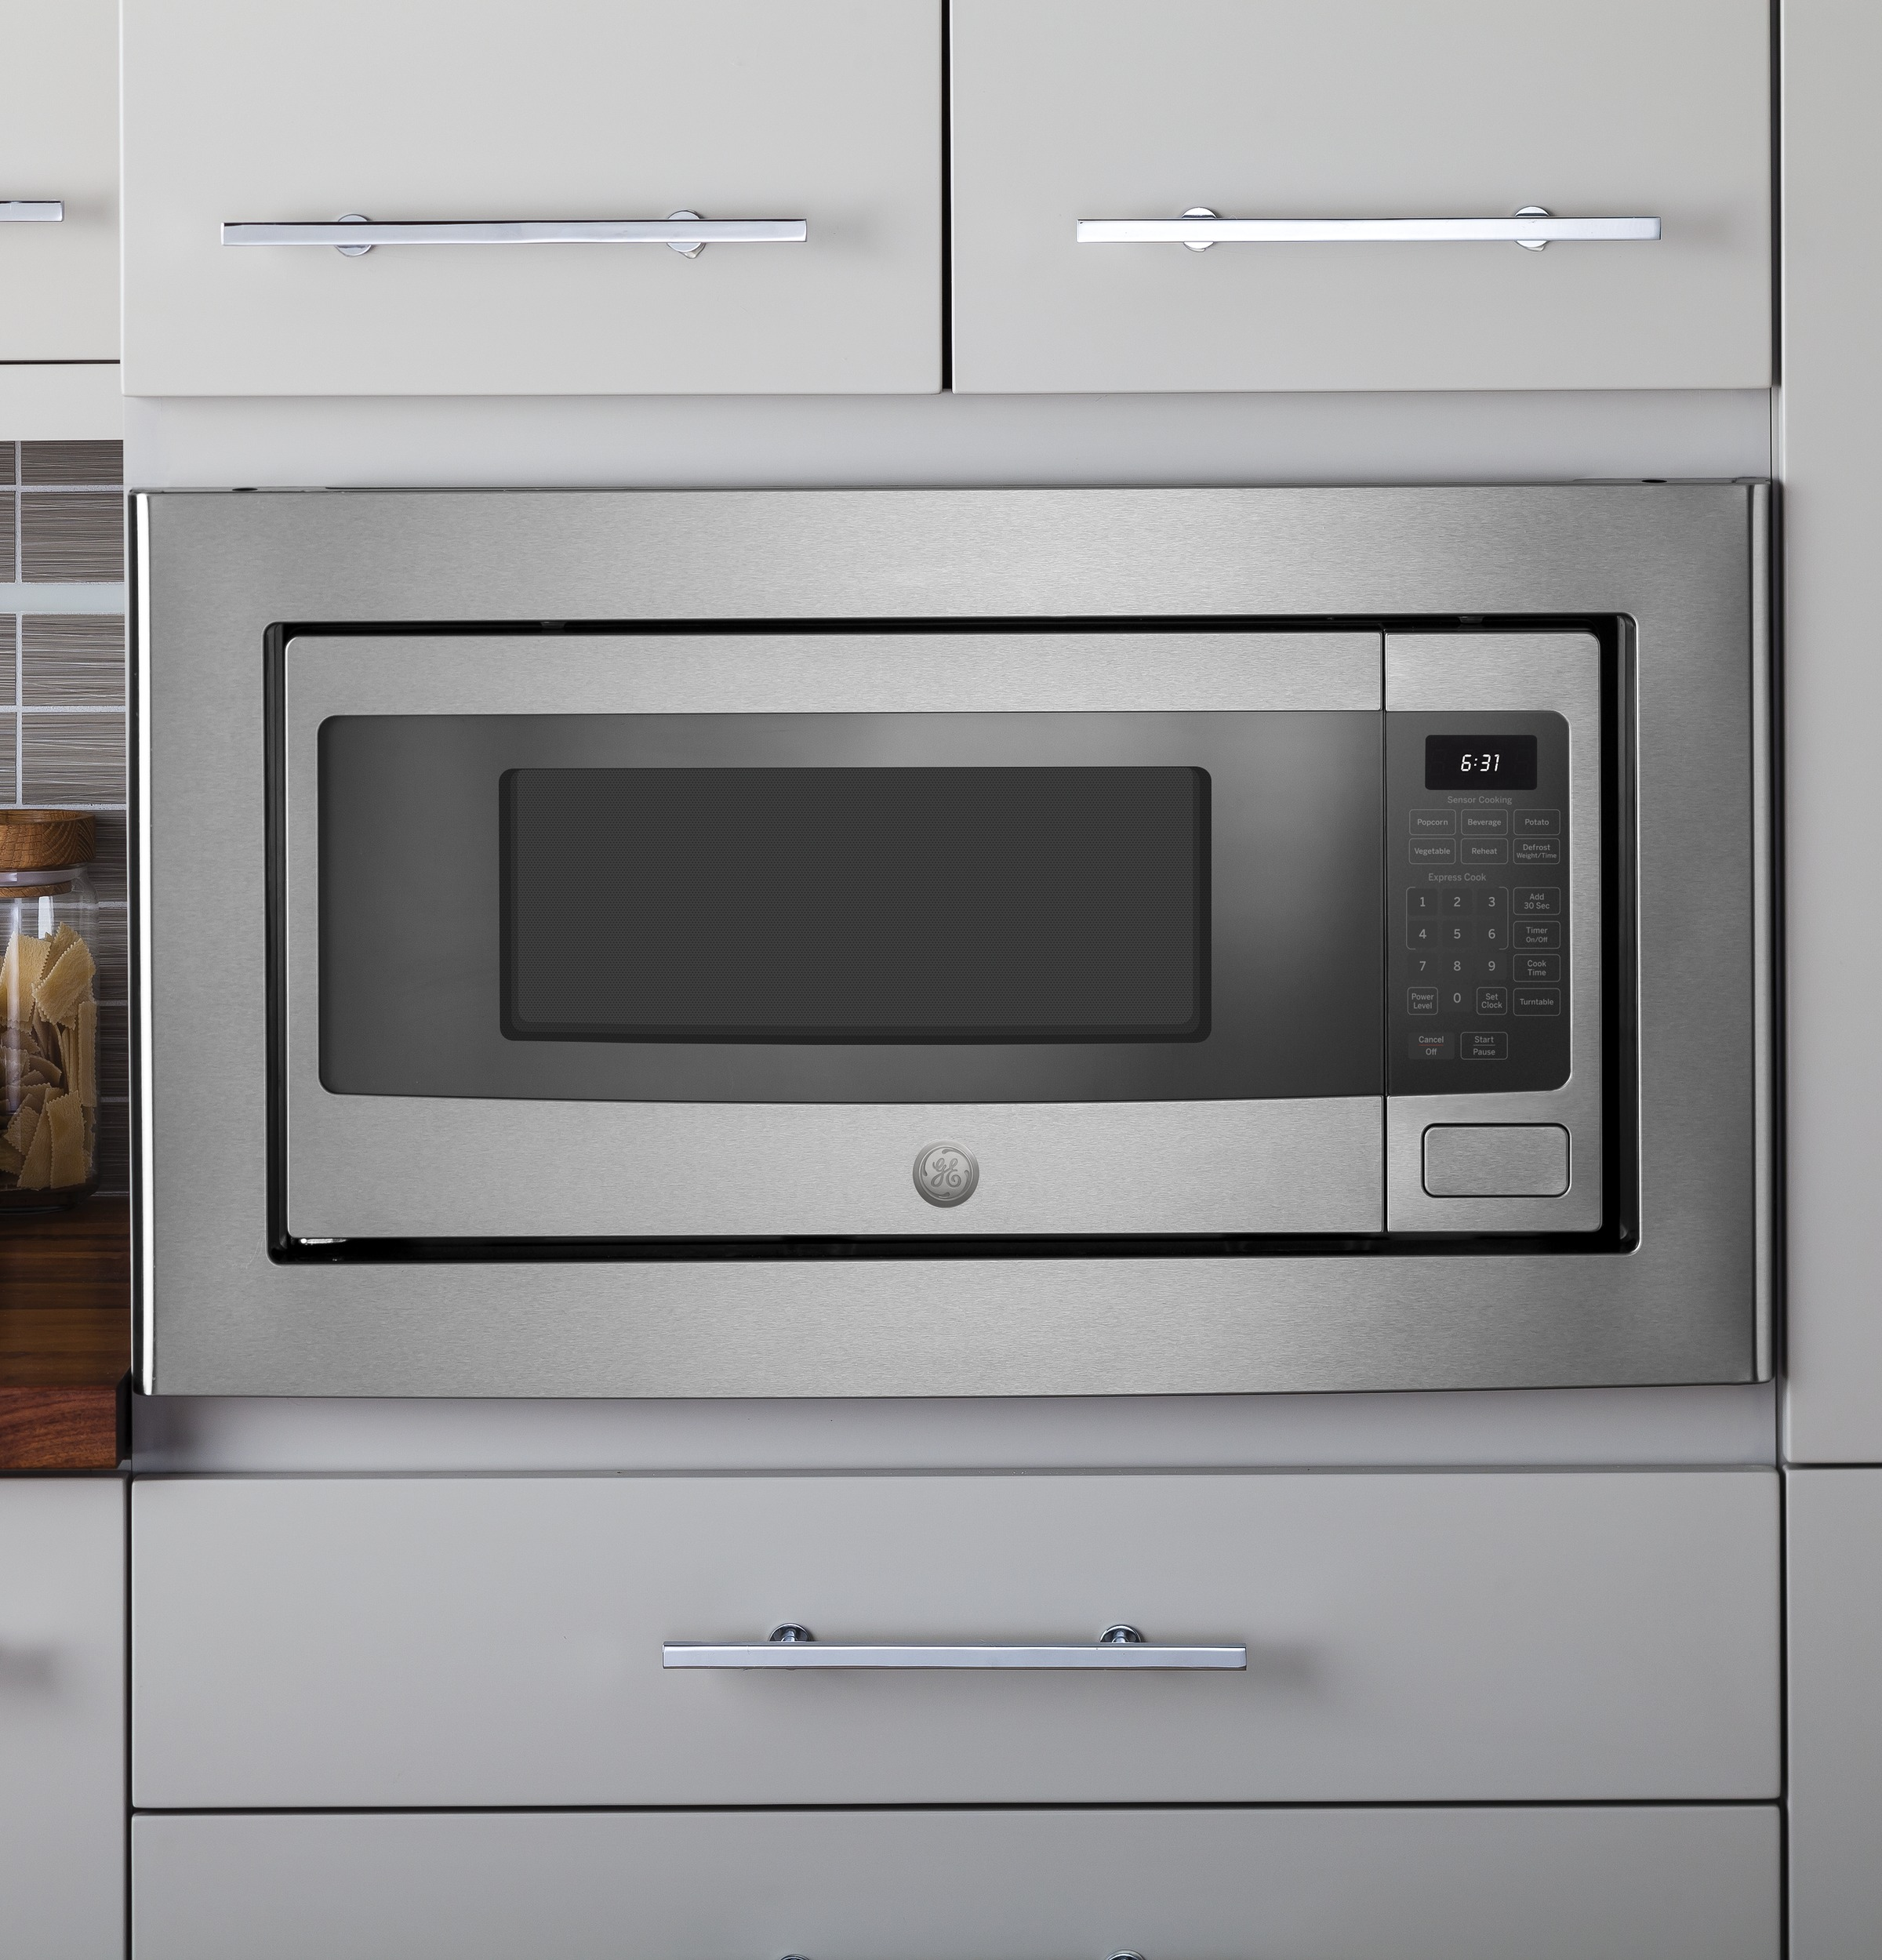 ge profile convection microwave wiring diagram ge profile wall oven wall oven wiring diagram ge profile series 1 1 cu ft countertop microwave oven pem31sfss on ge